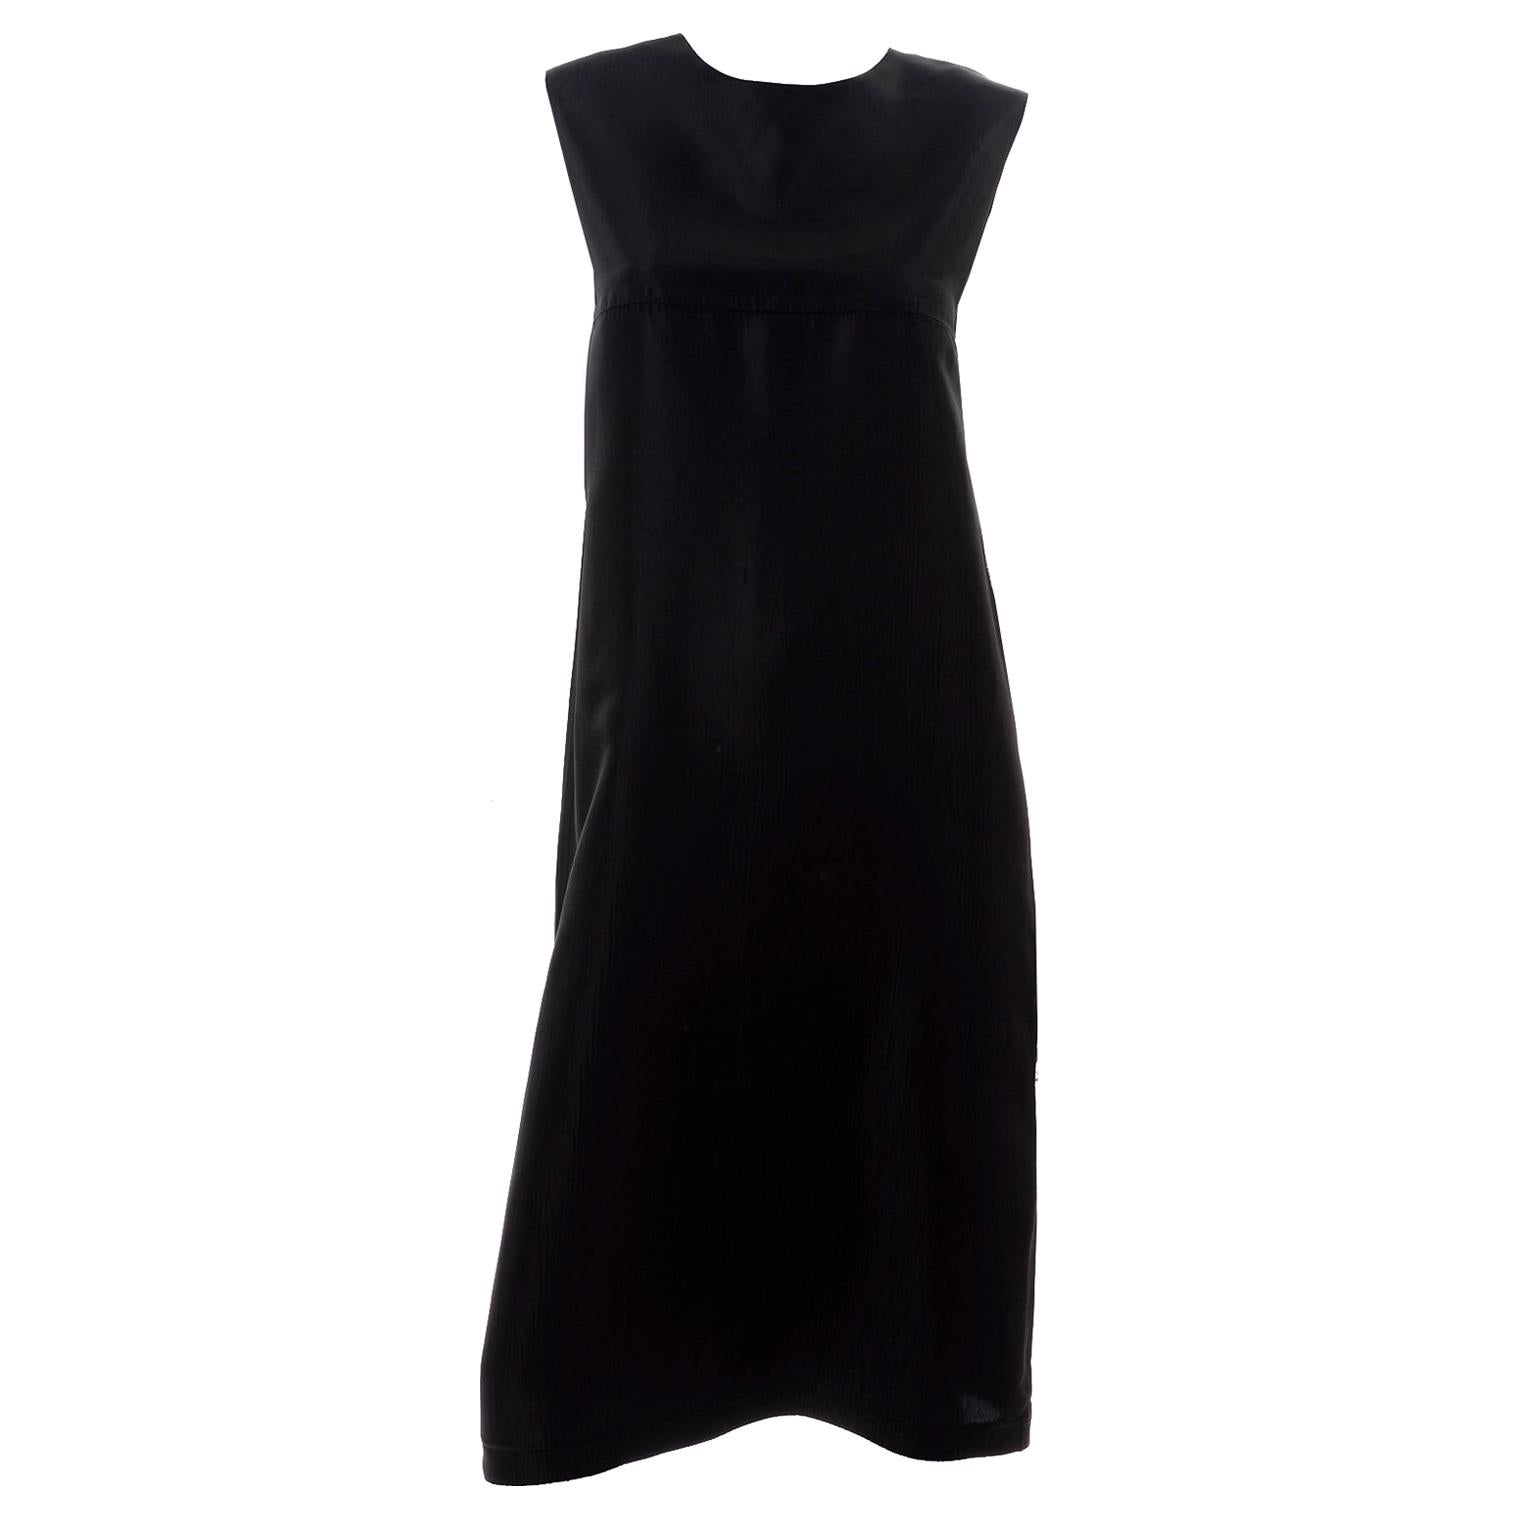 Yohji Yamamoto +Noir Sleeveless Black Textured Rayon Column Dress